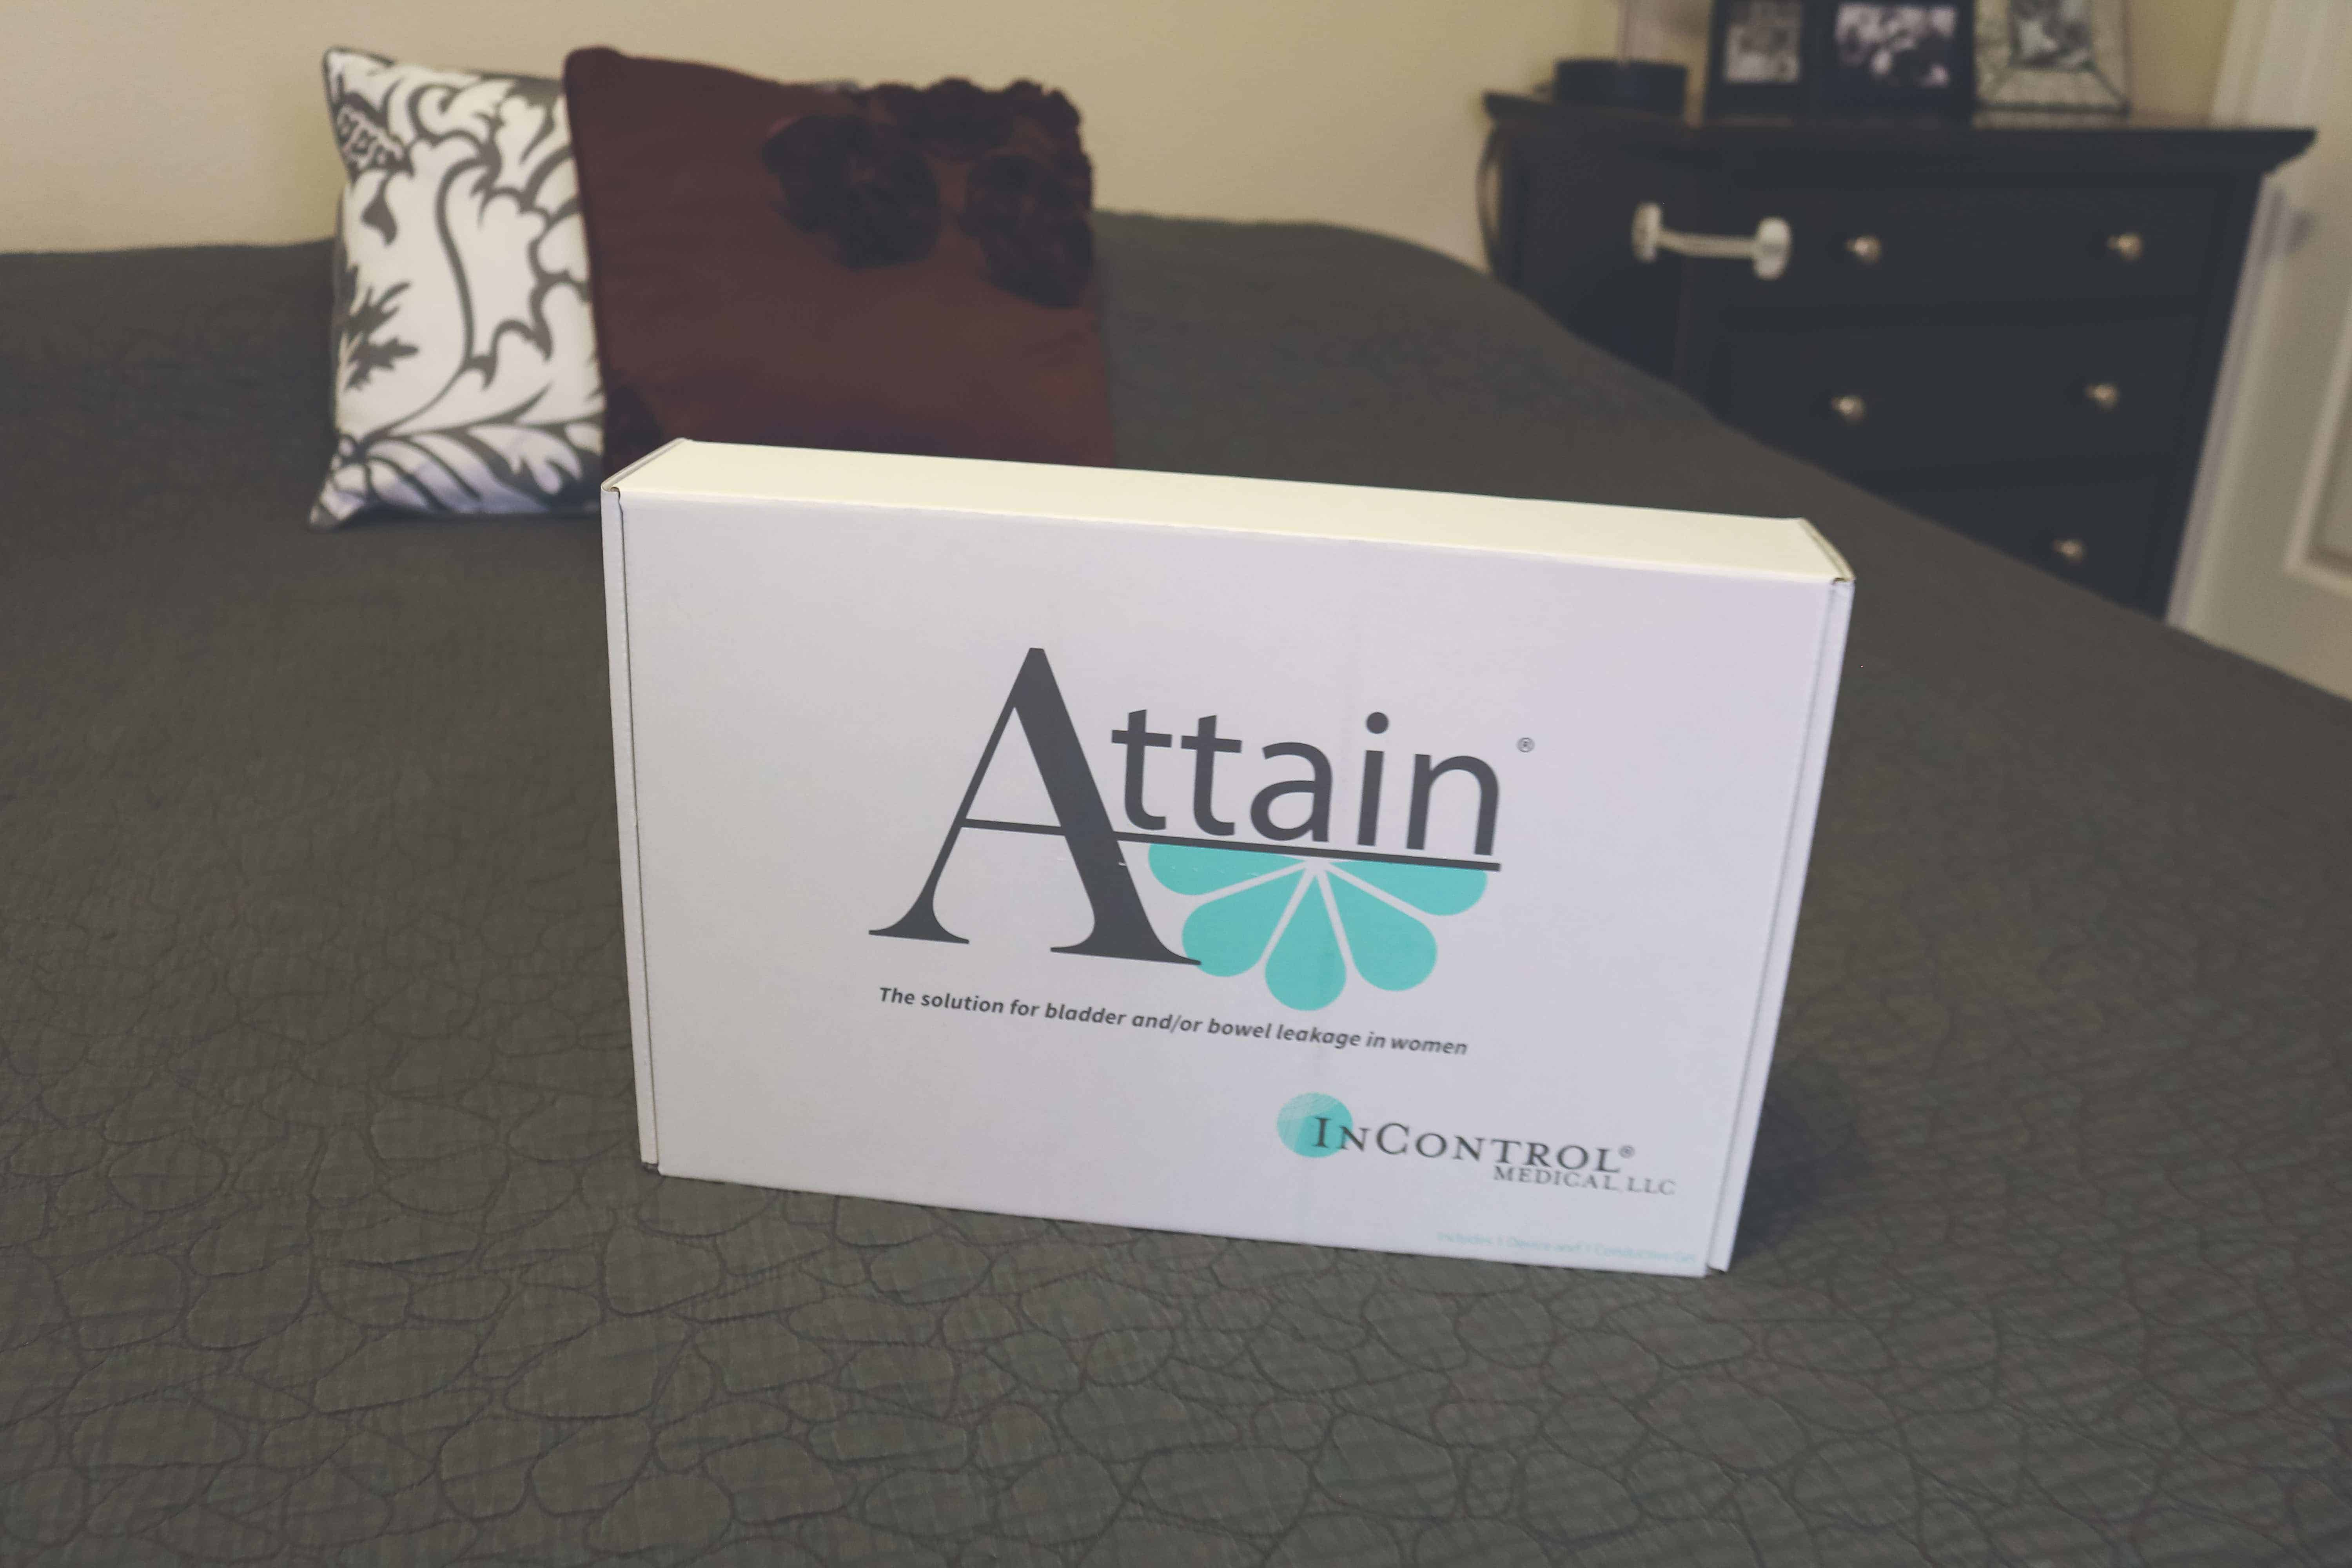 Attain Box